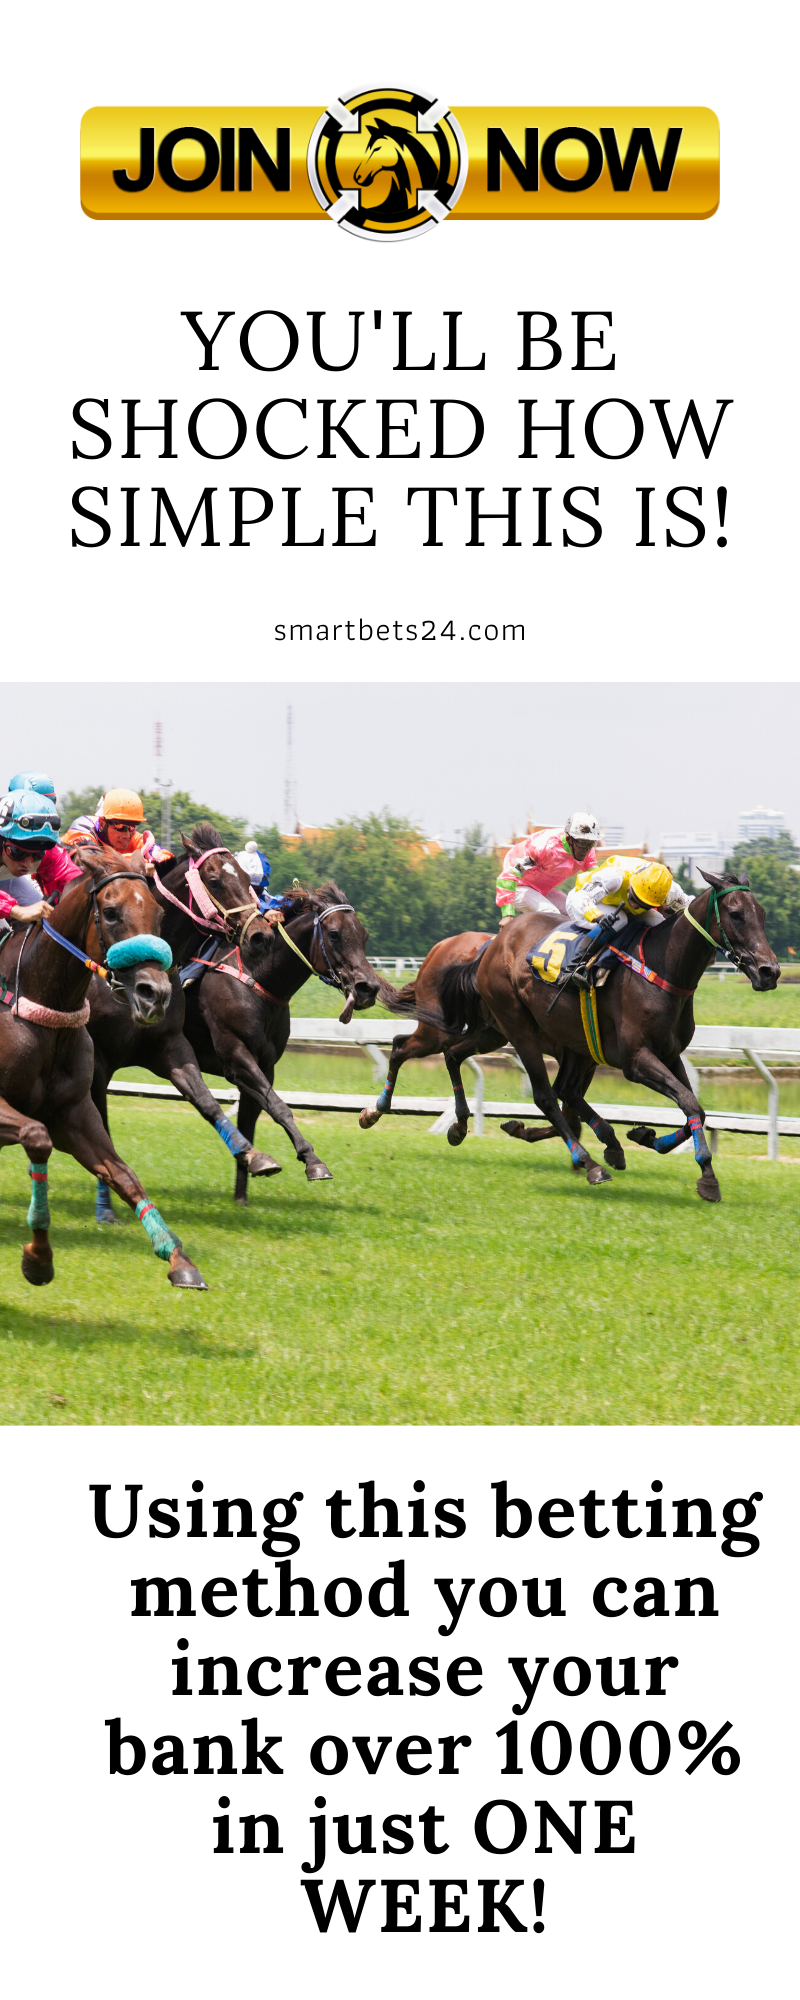 Horse racing betting golden rules tab nz mobile betting service